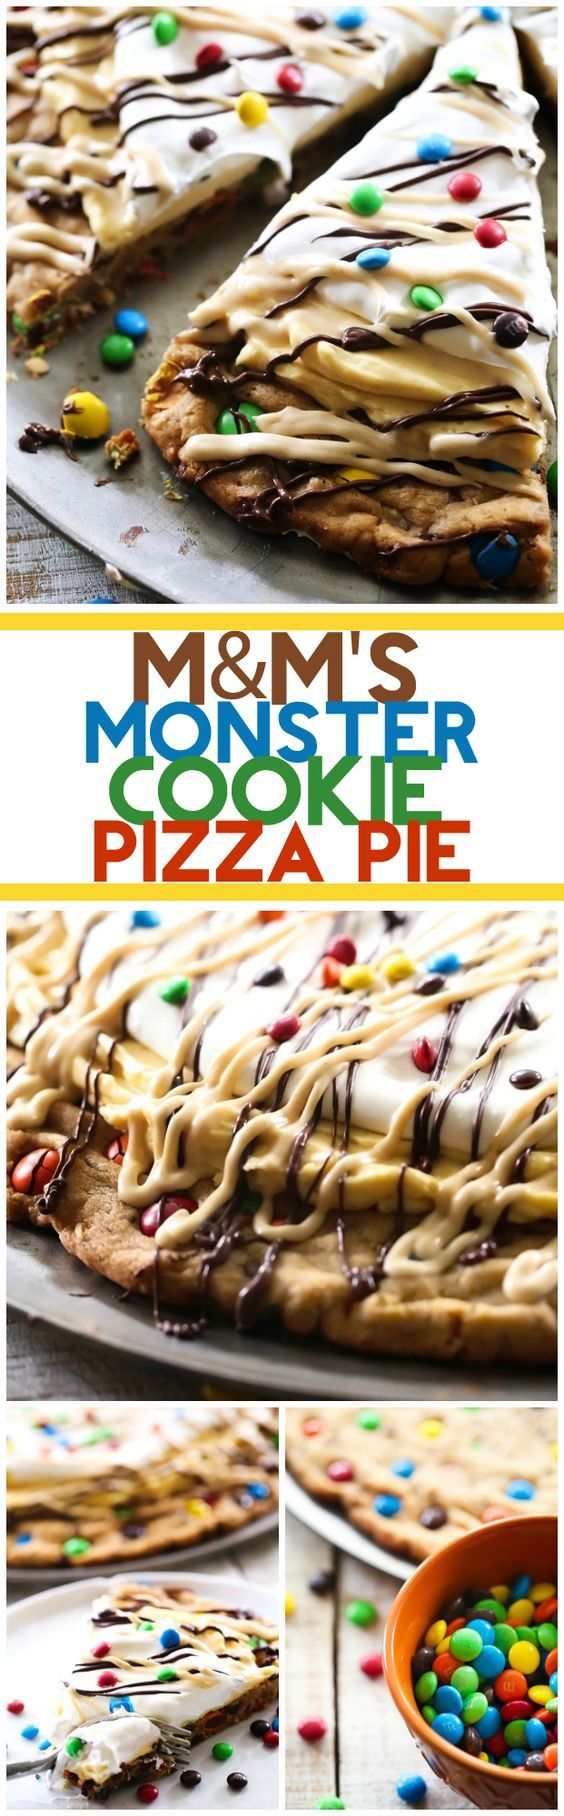 This M&M'S Monster Cookie Pizza Pie is the ultimate dessert! It is peanut butter chocolate heaven! #sponsored @mmschocolate